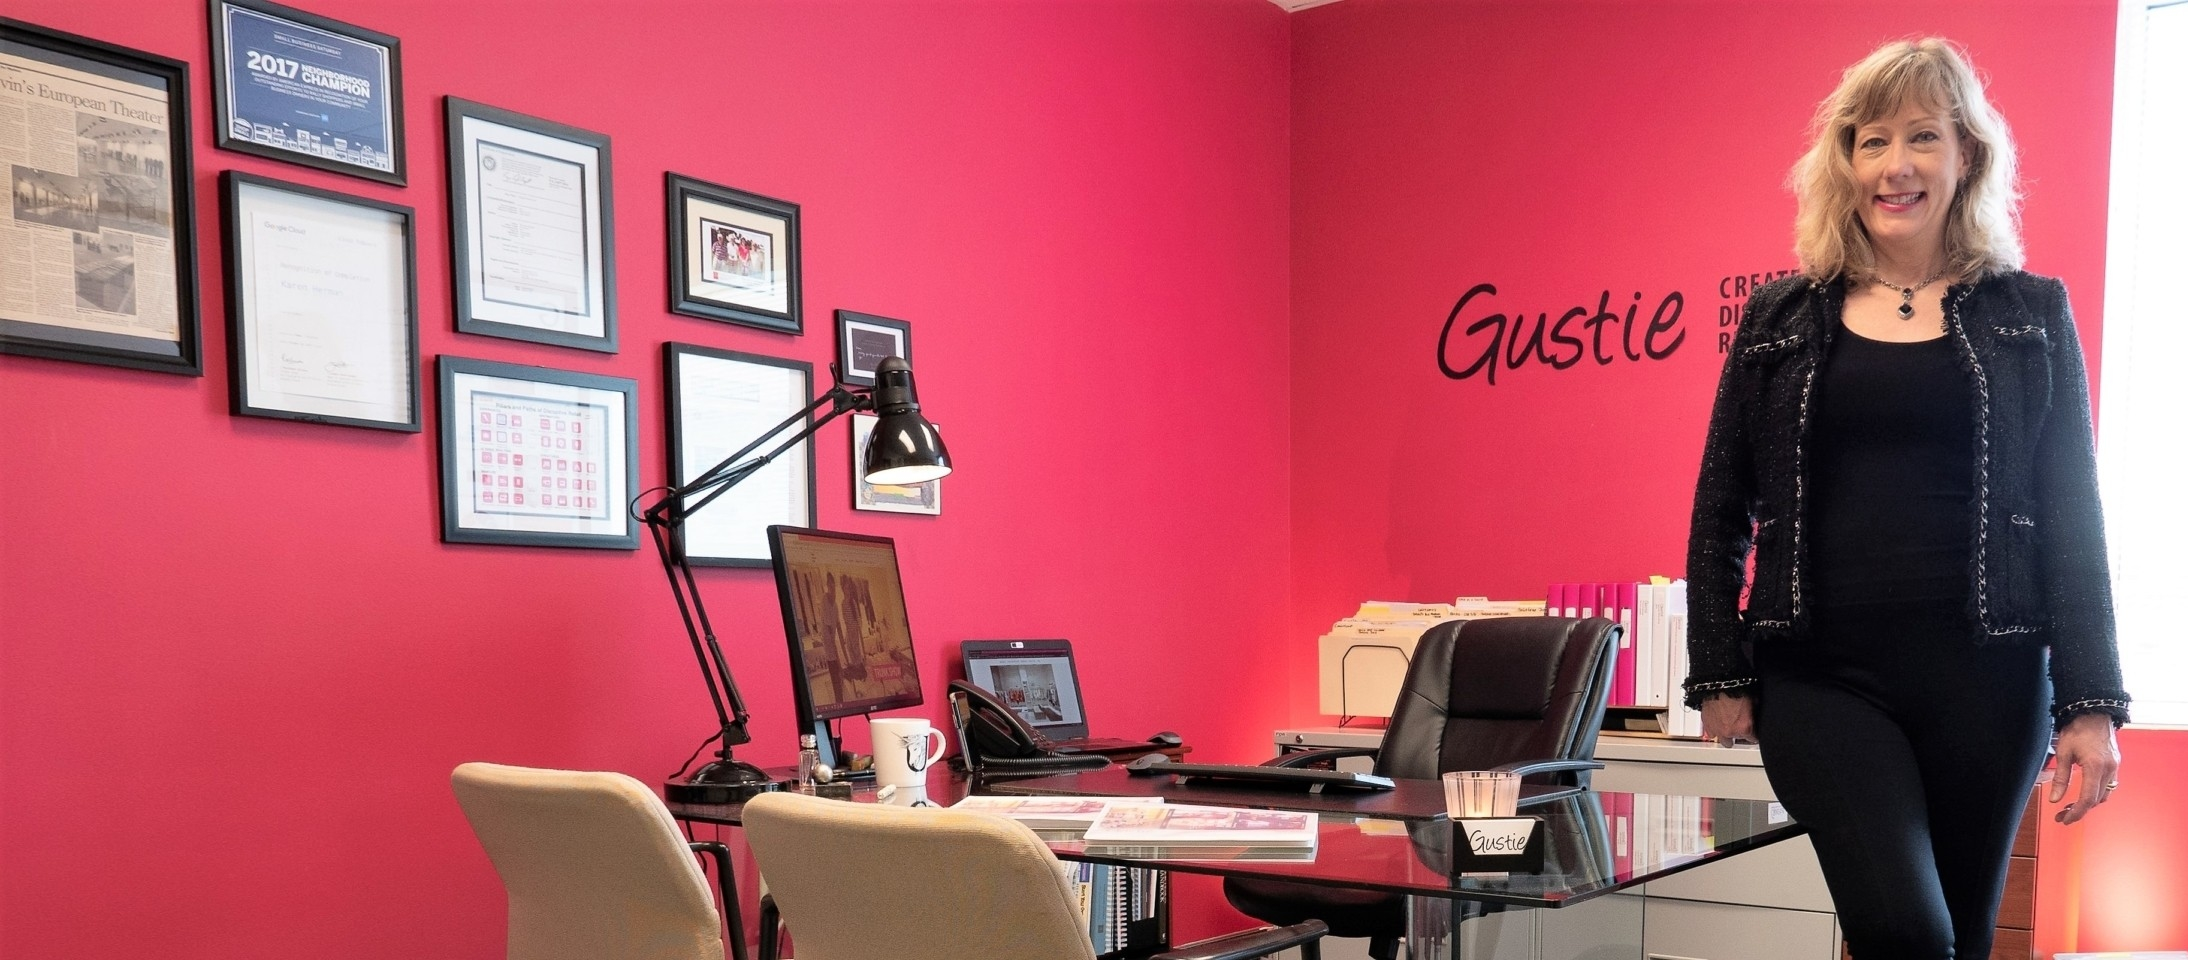 About Gustie, Karen S. Herman, Founder and CEO at Gustie Creative LLC